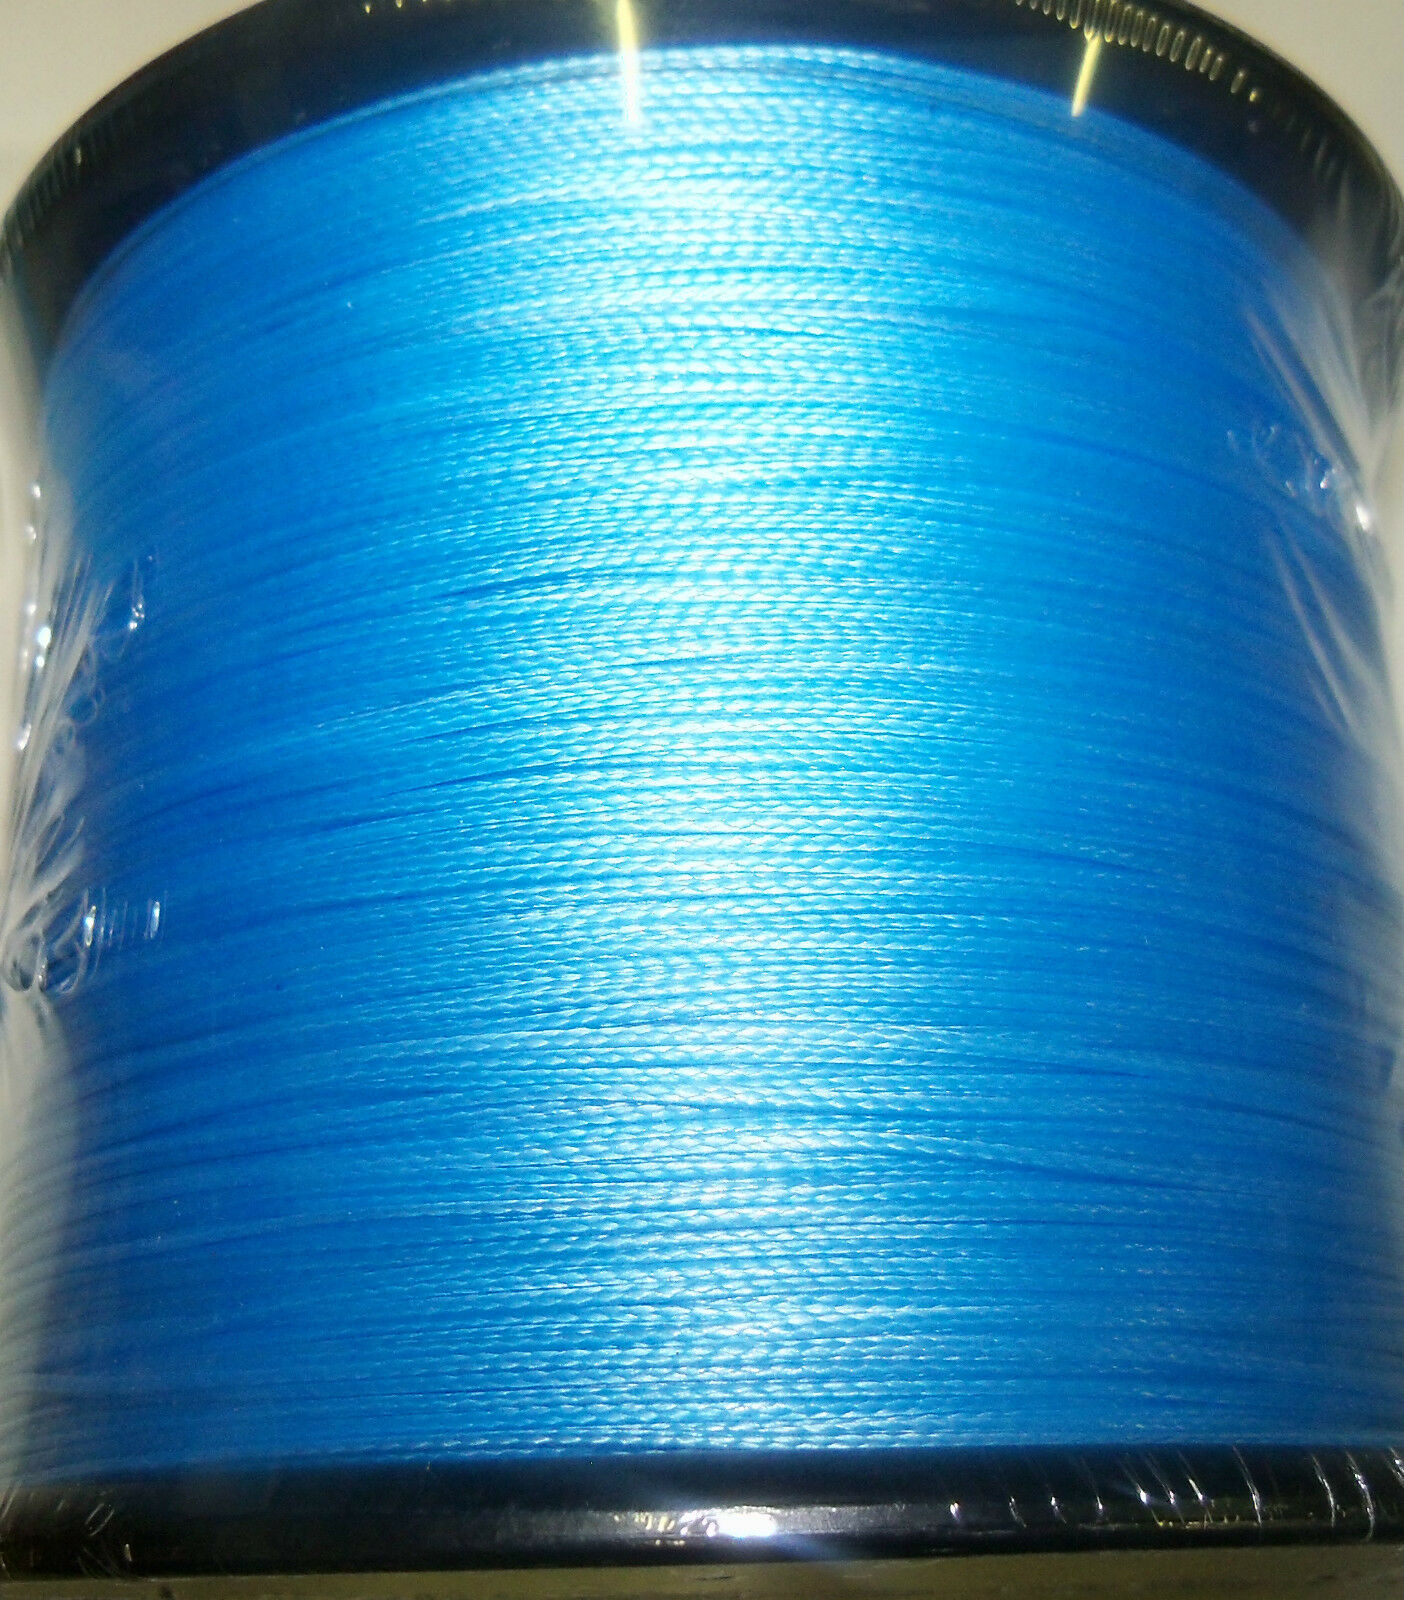 15 LB 600 600 600 YARDS TUF LINE XP SUPERBRAID FISHING LINE - CHOOSE COLOR 1f645a